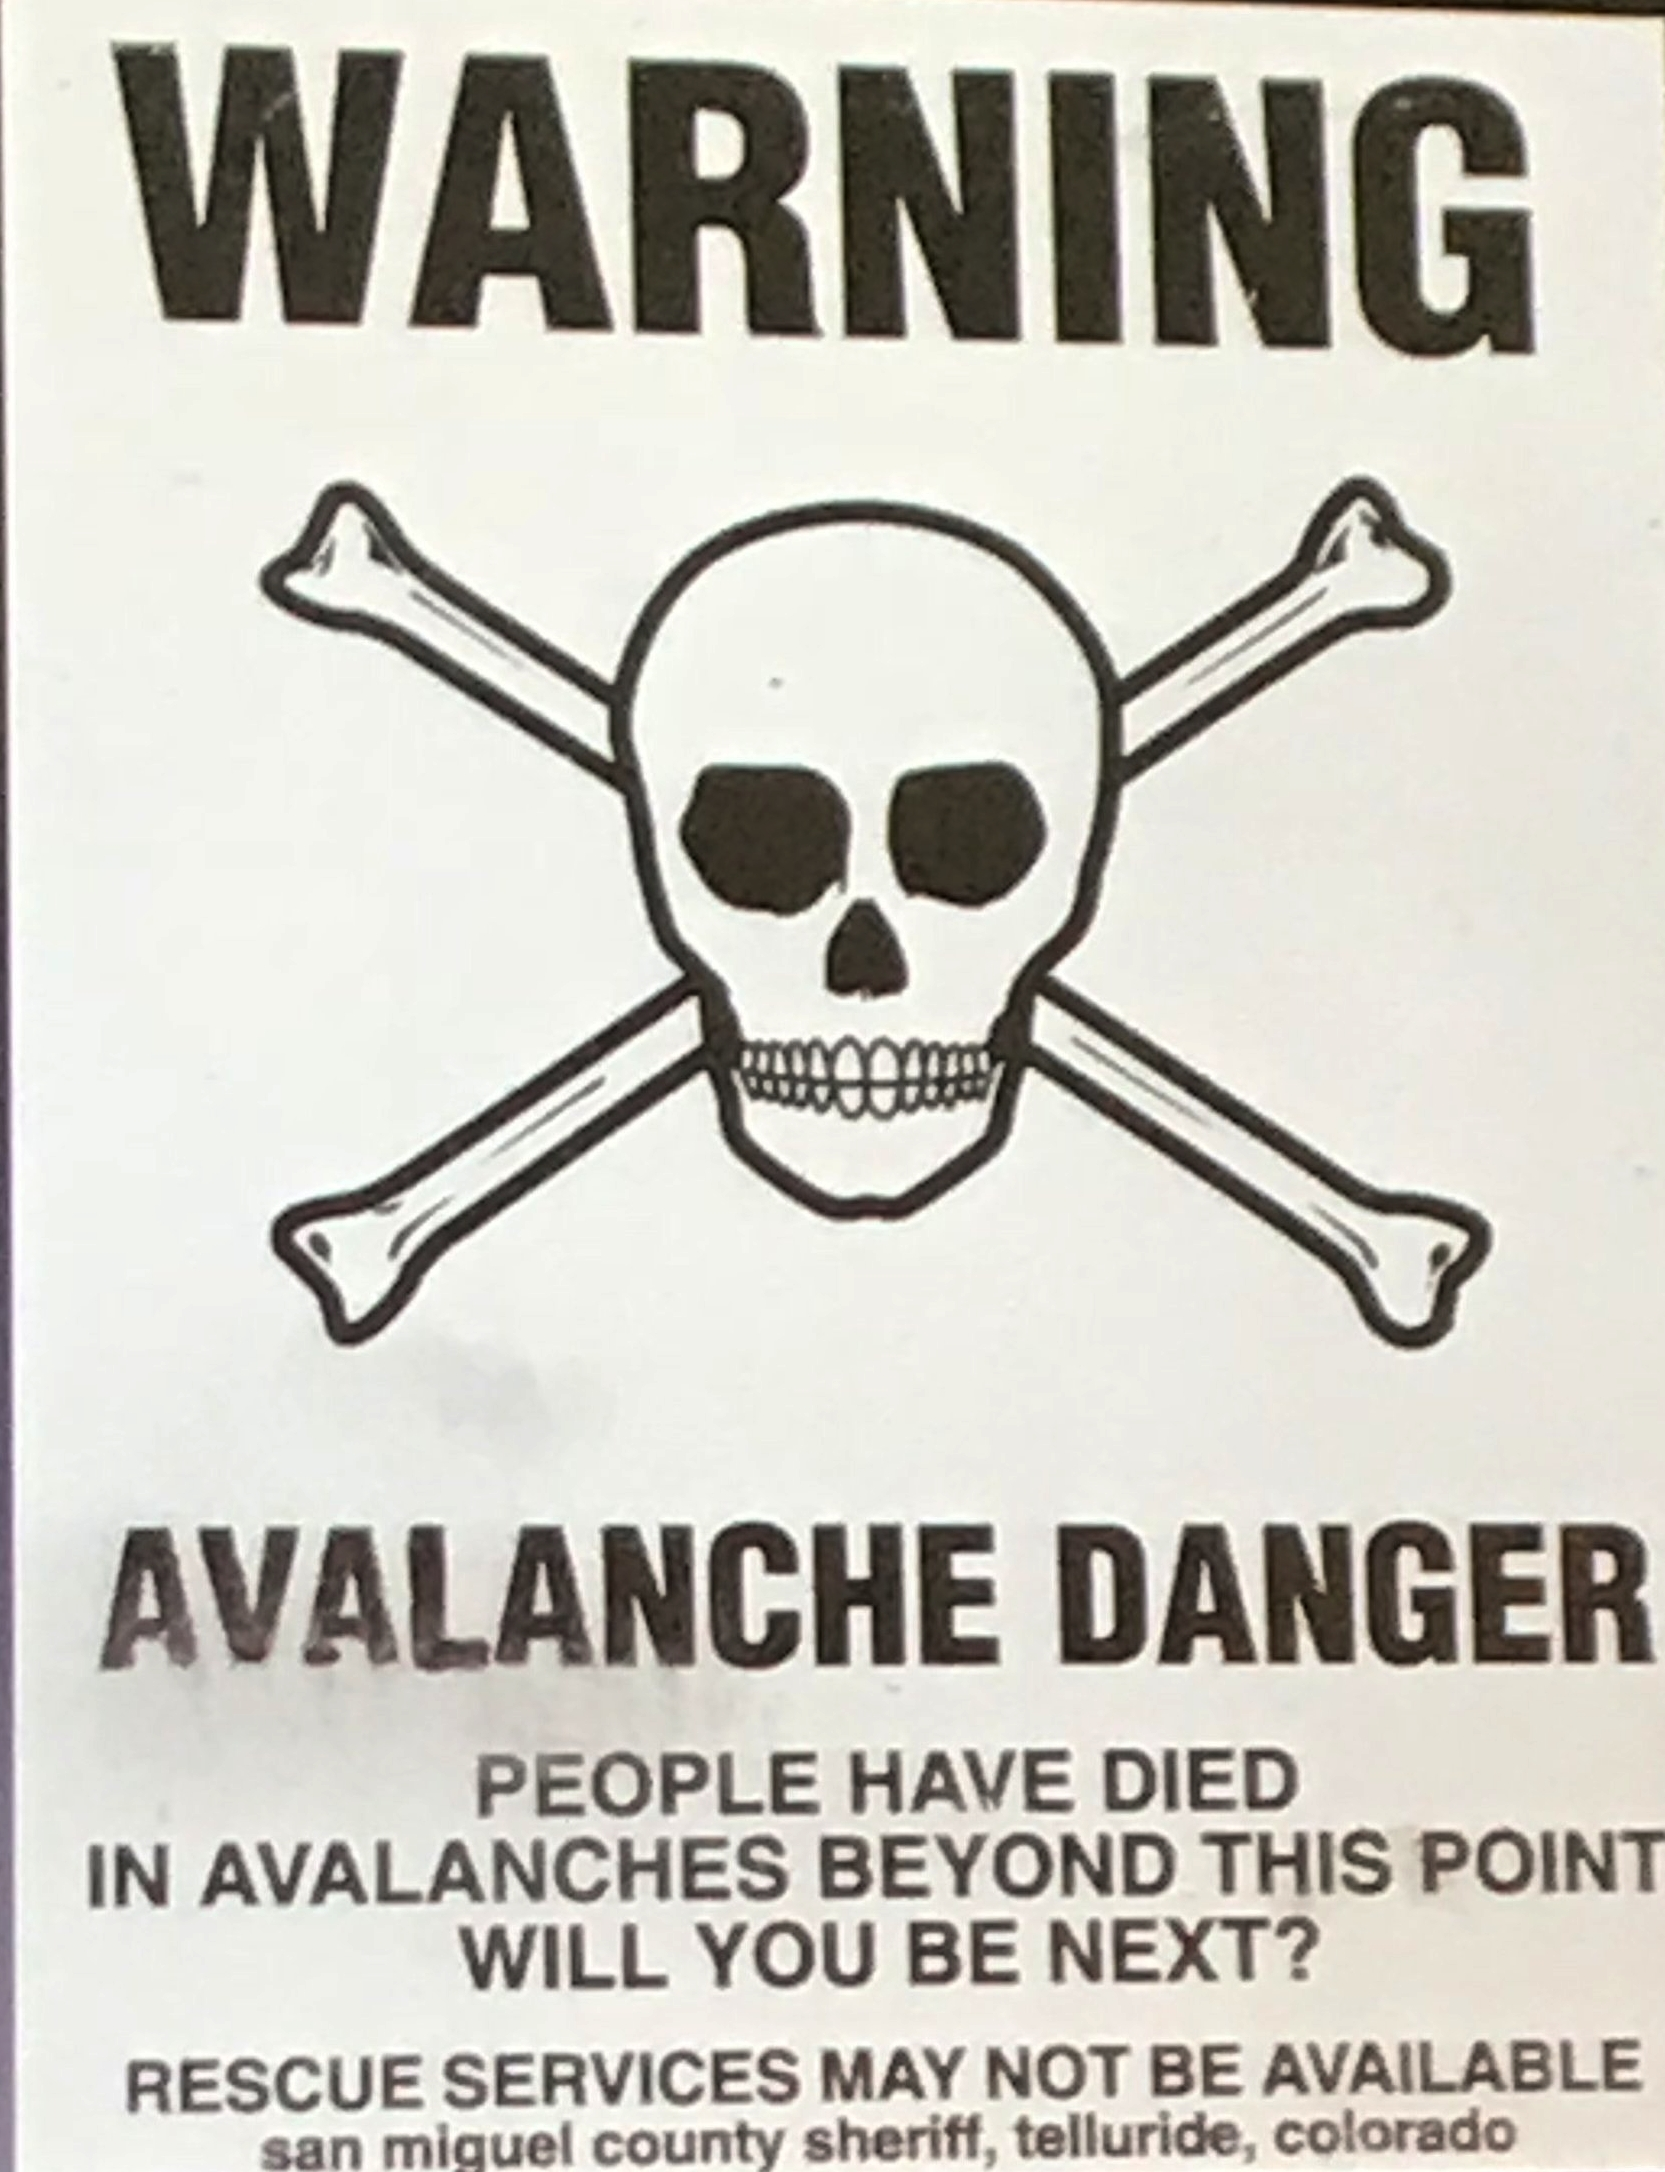 Sturbie provided this as an example between teaching abstinence from backcountry (skull and crossbones) and educating people on where to go safely and understand their risk.